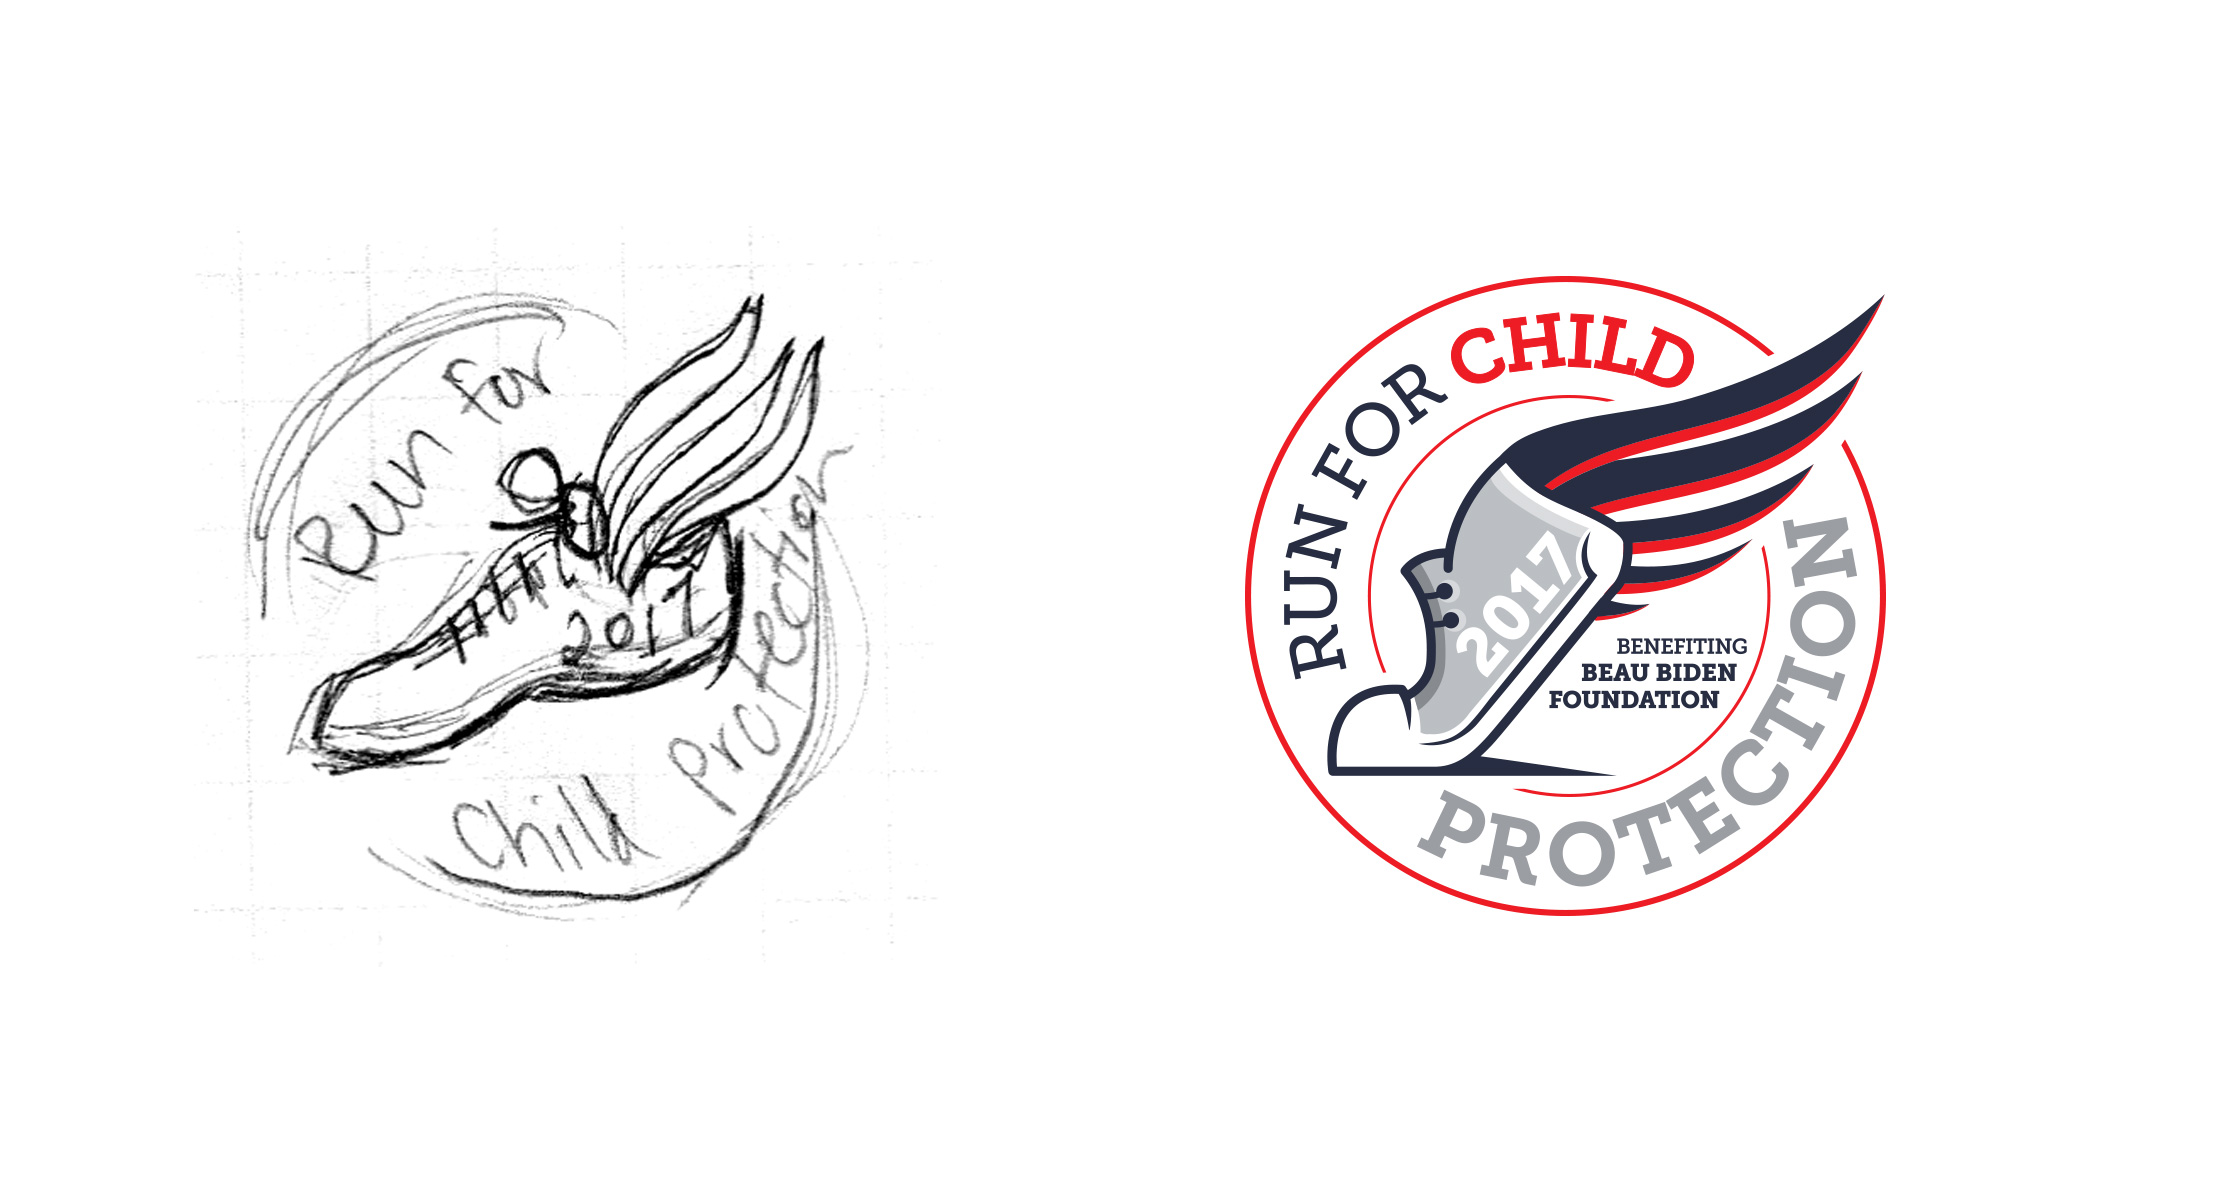 From Sketches To Finished Logo Designs - Pomp Creative | Branding Your Gala Fundraiser ...